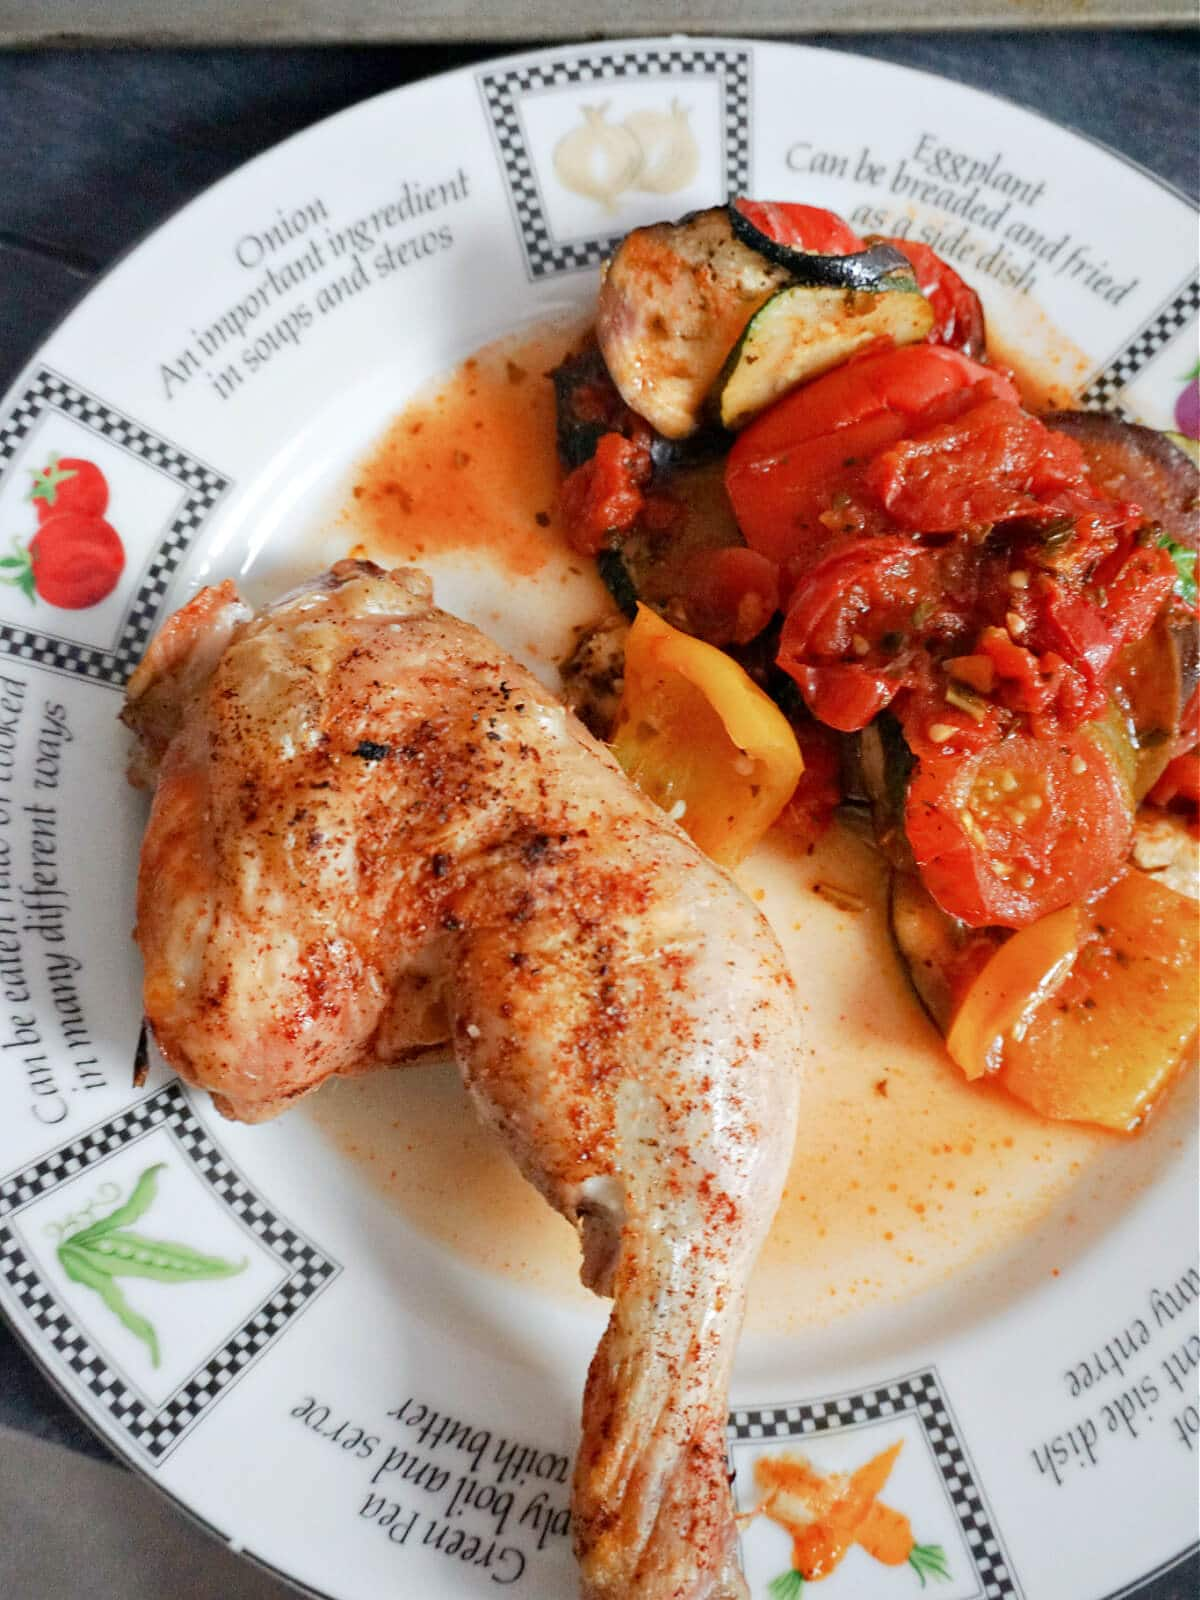 Overhead shot of a plate with a roasted chicken leg and ratatouille